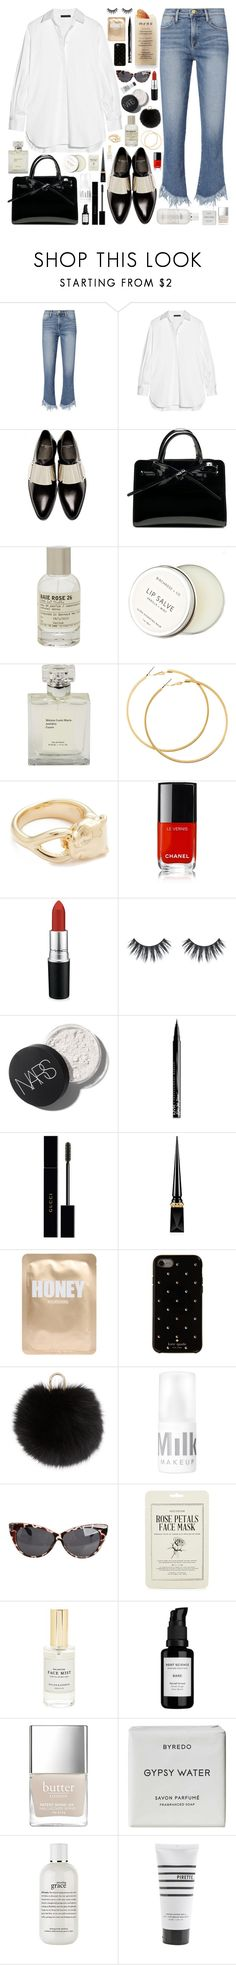 """F R I N G E / /"" by douxlaur ❤ liked on Polyvore featuring Frame, The Row, Givenchy, Martha Stewart, Le Labo, Birchrose + Co., H&M, Soave Oro, Chanel and MAC Cosmetics"